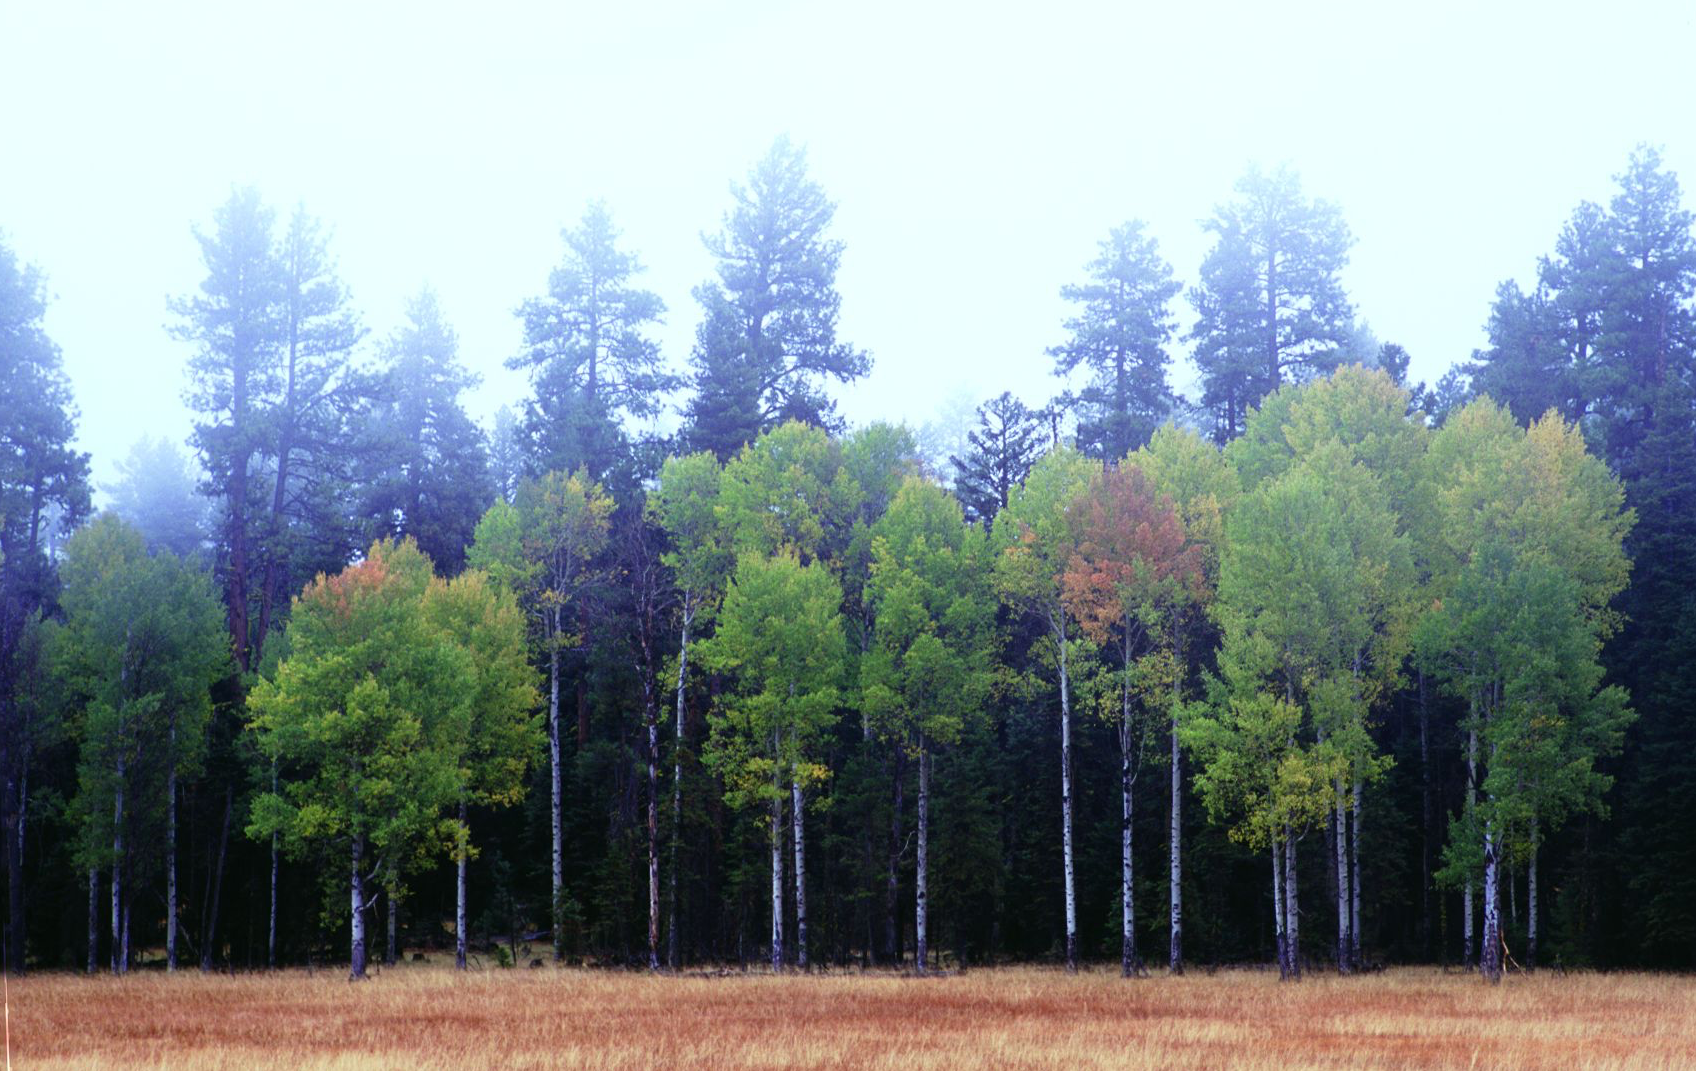 Figure 2.  Quaking aspen ( Populus tremuloides ) (foreground) and ponderosa pine ( Pinus ponderosa ) (background) on the Ochoco National Forest in Oregon. While aesthetically pleasing, the image is disturbing if you note the utter lack of any aspen replacement stems . Source: Sandy Lonsdale. First appeared in   Oregon Wild: Endangered Forest Wilderness     (Timber Press, 2004).